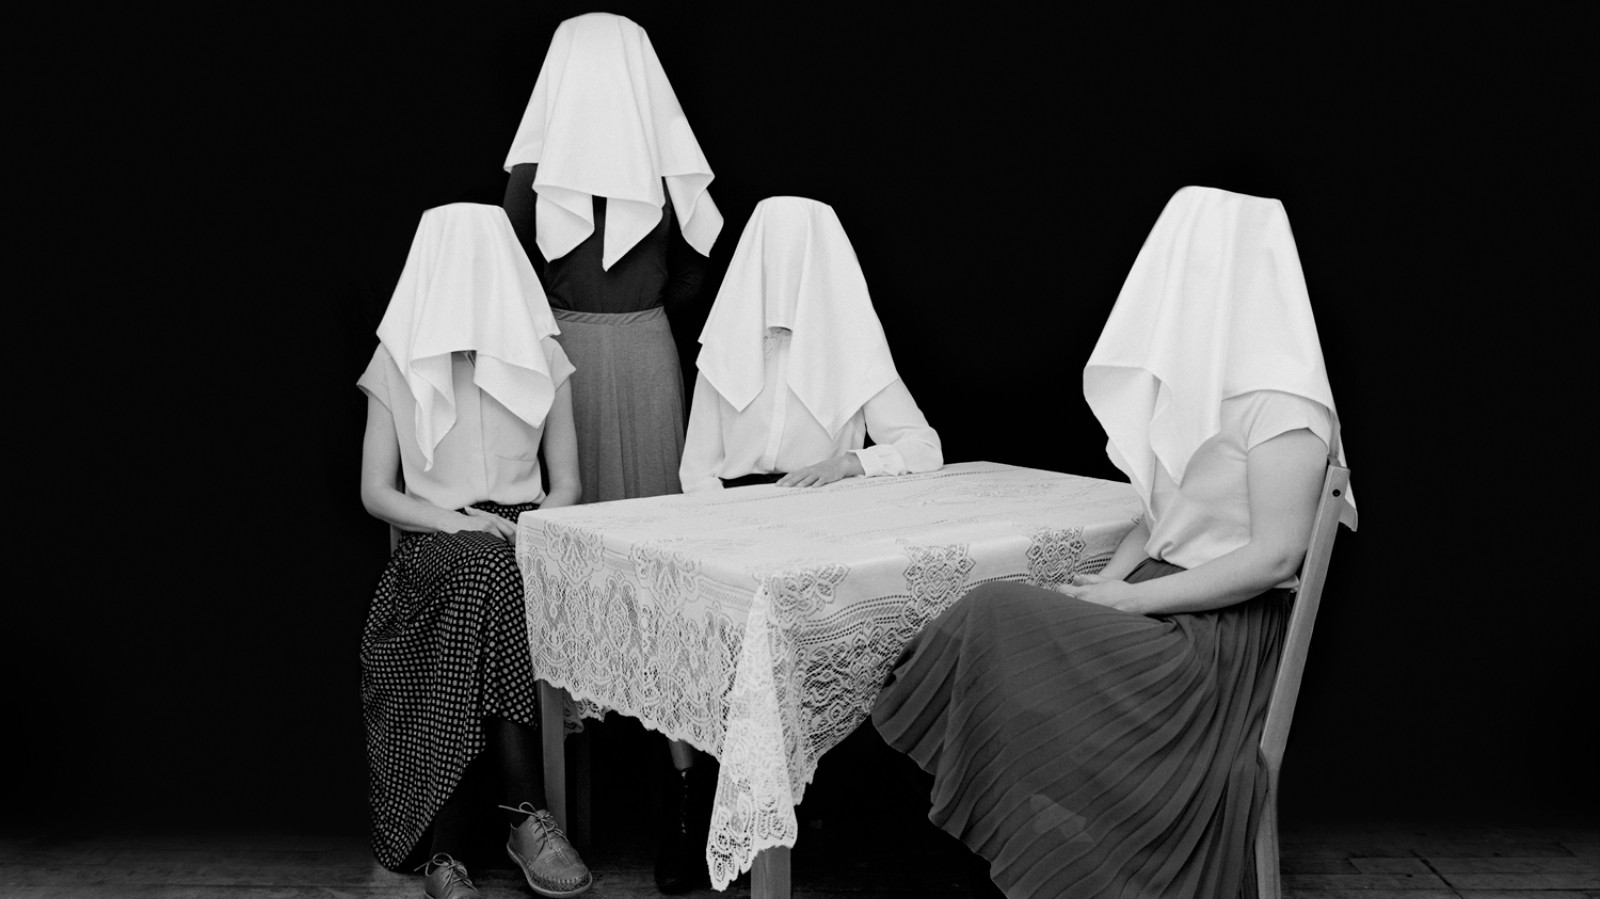 31 Photographers Capture Ghosts, Witches and Other Occult Phenomena